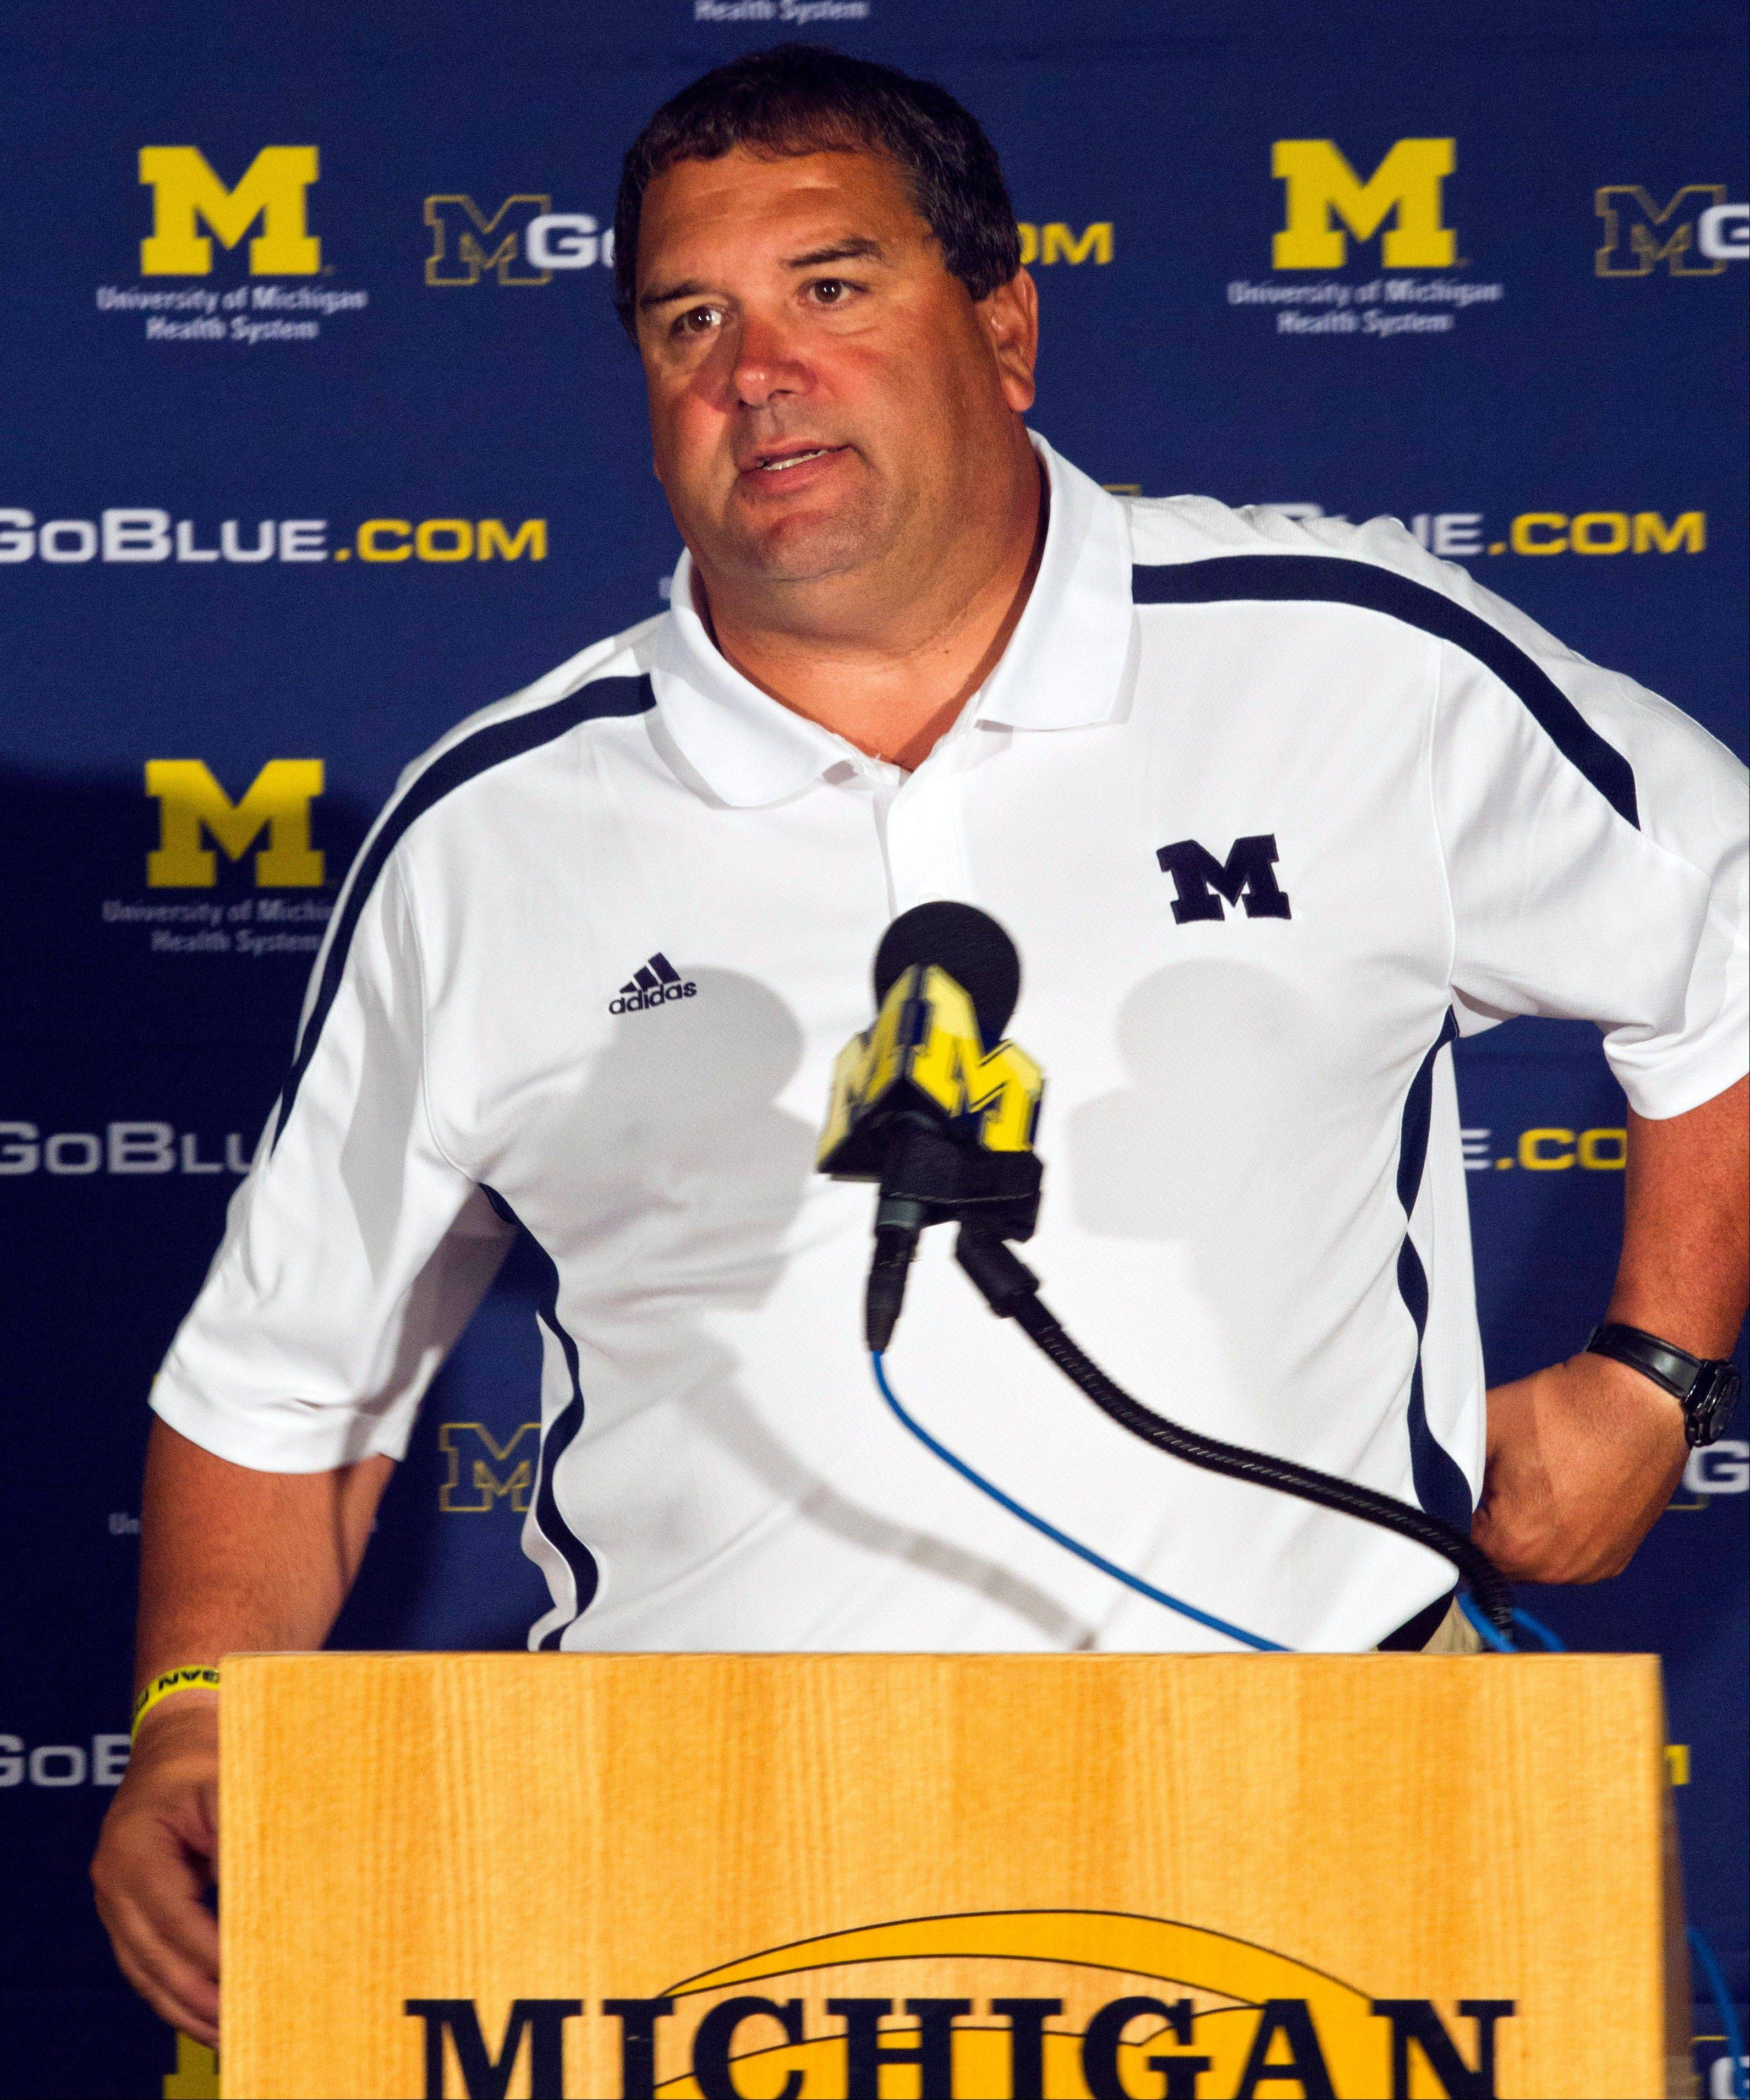 Michigan head coach Brady Hoke and the Wolverines play Alabama for just the fourth time on Saturday at Cowboys Stadium in Arlington, Texas, despite having combined for 1,709 wins and 25 national titles.